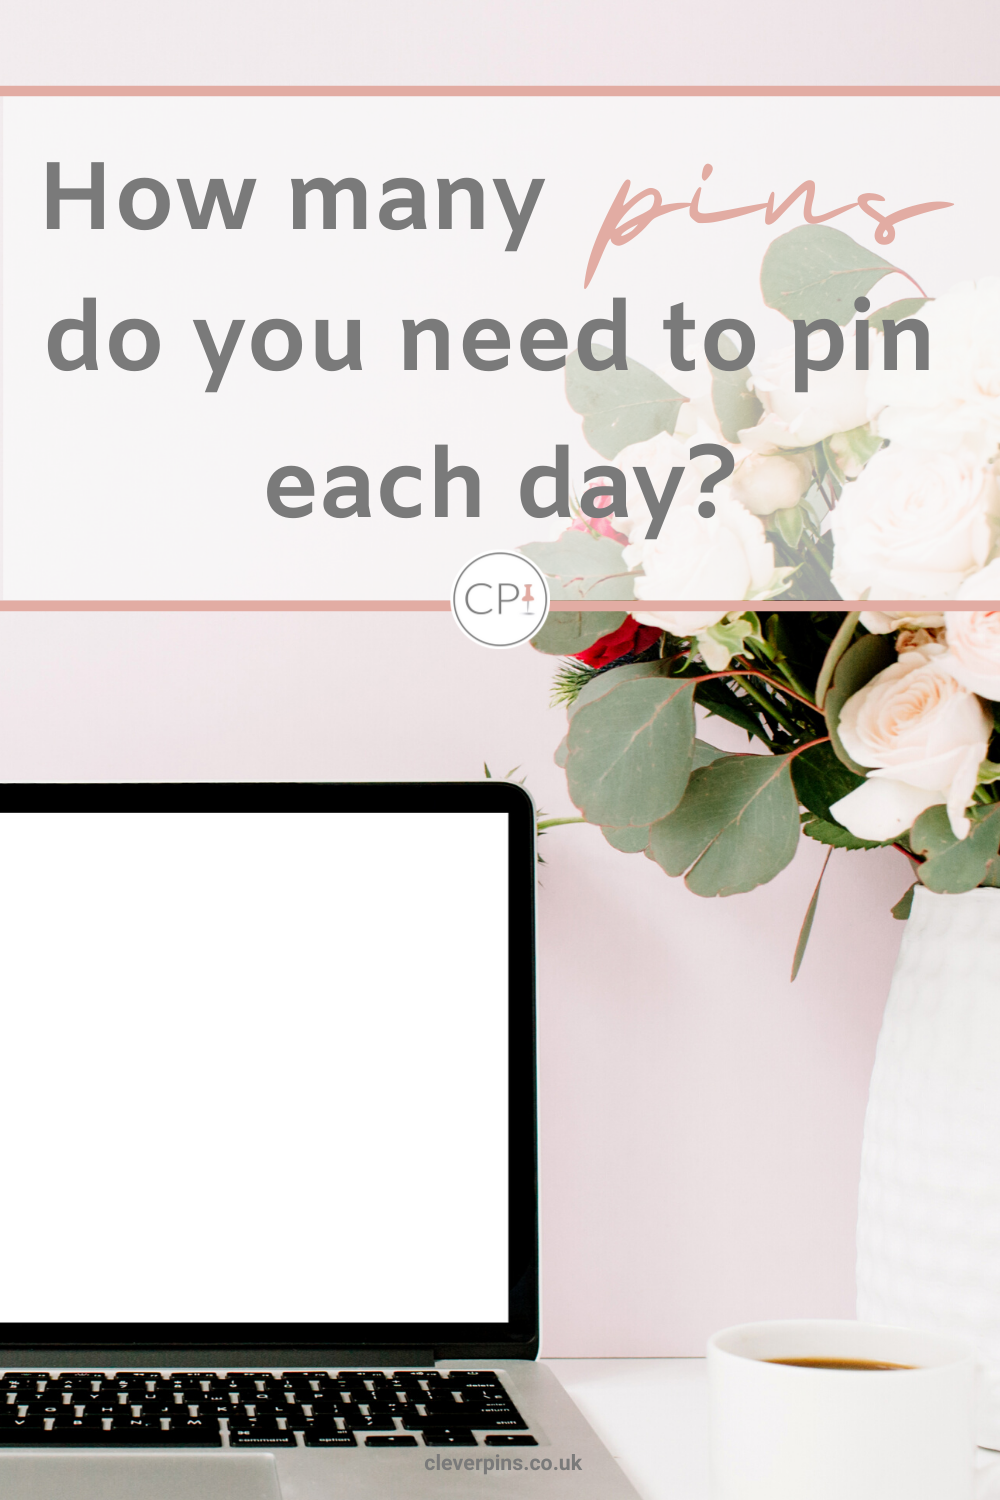 How many pins do you need to pin each day?